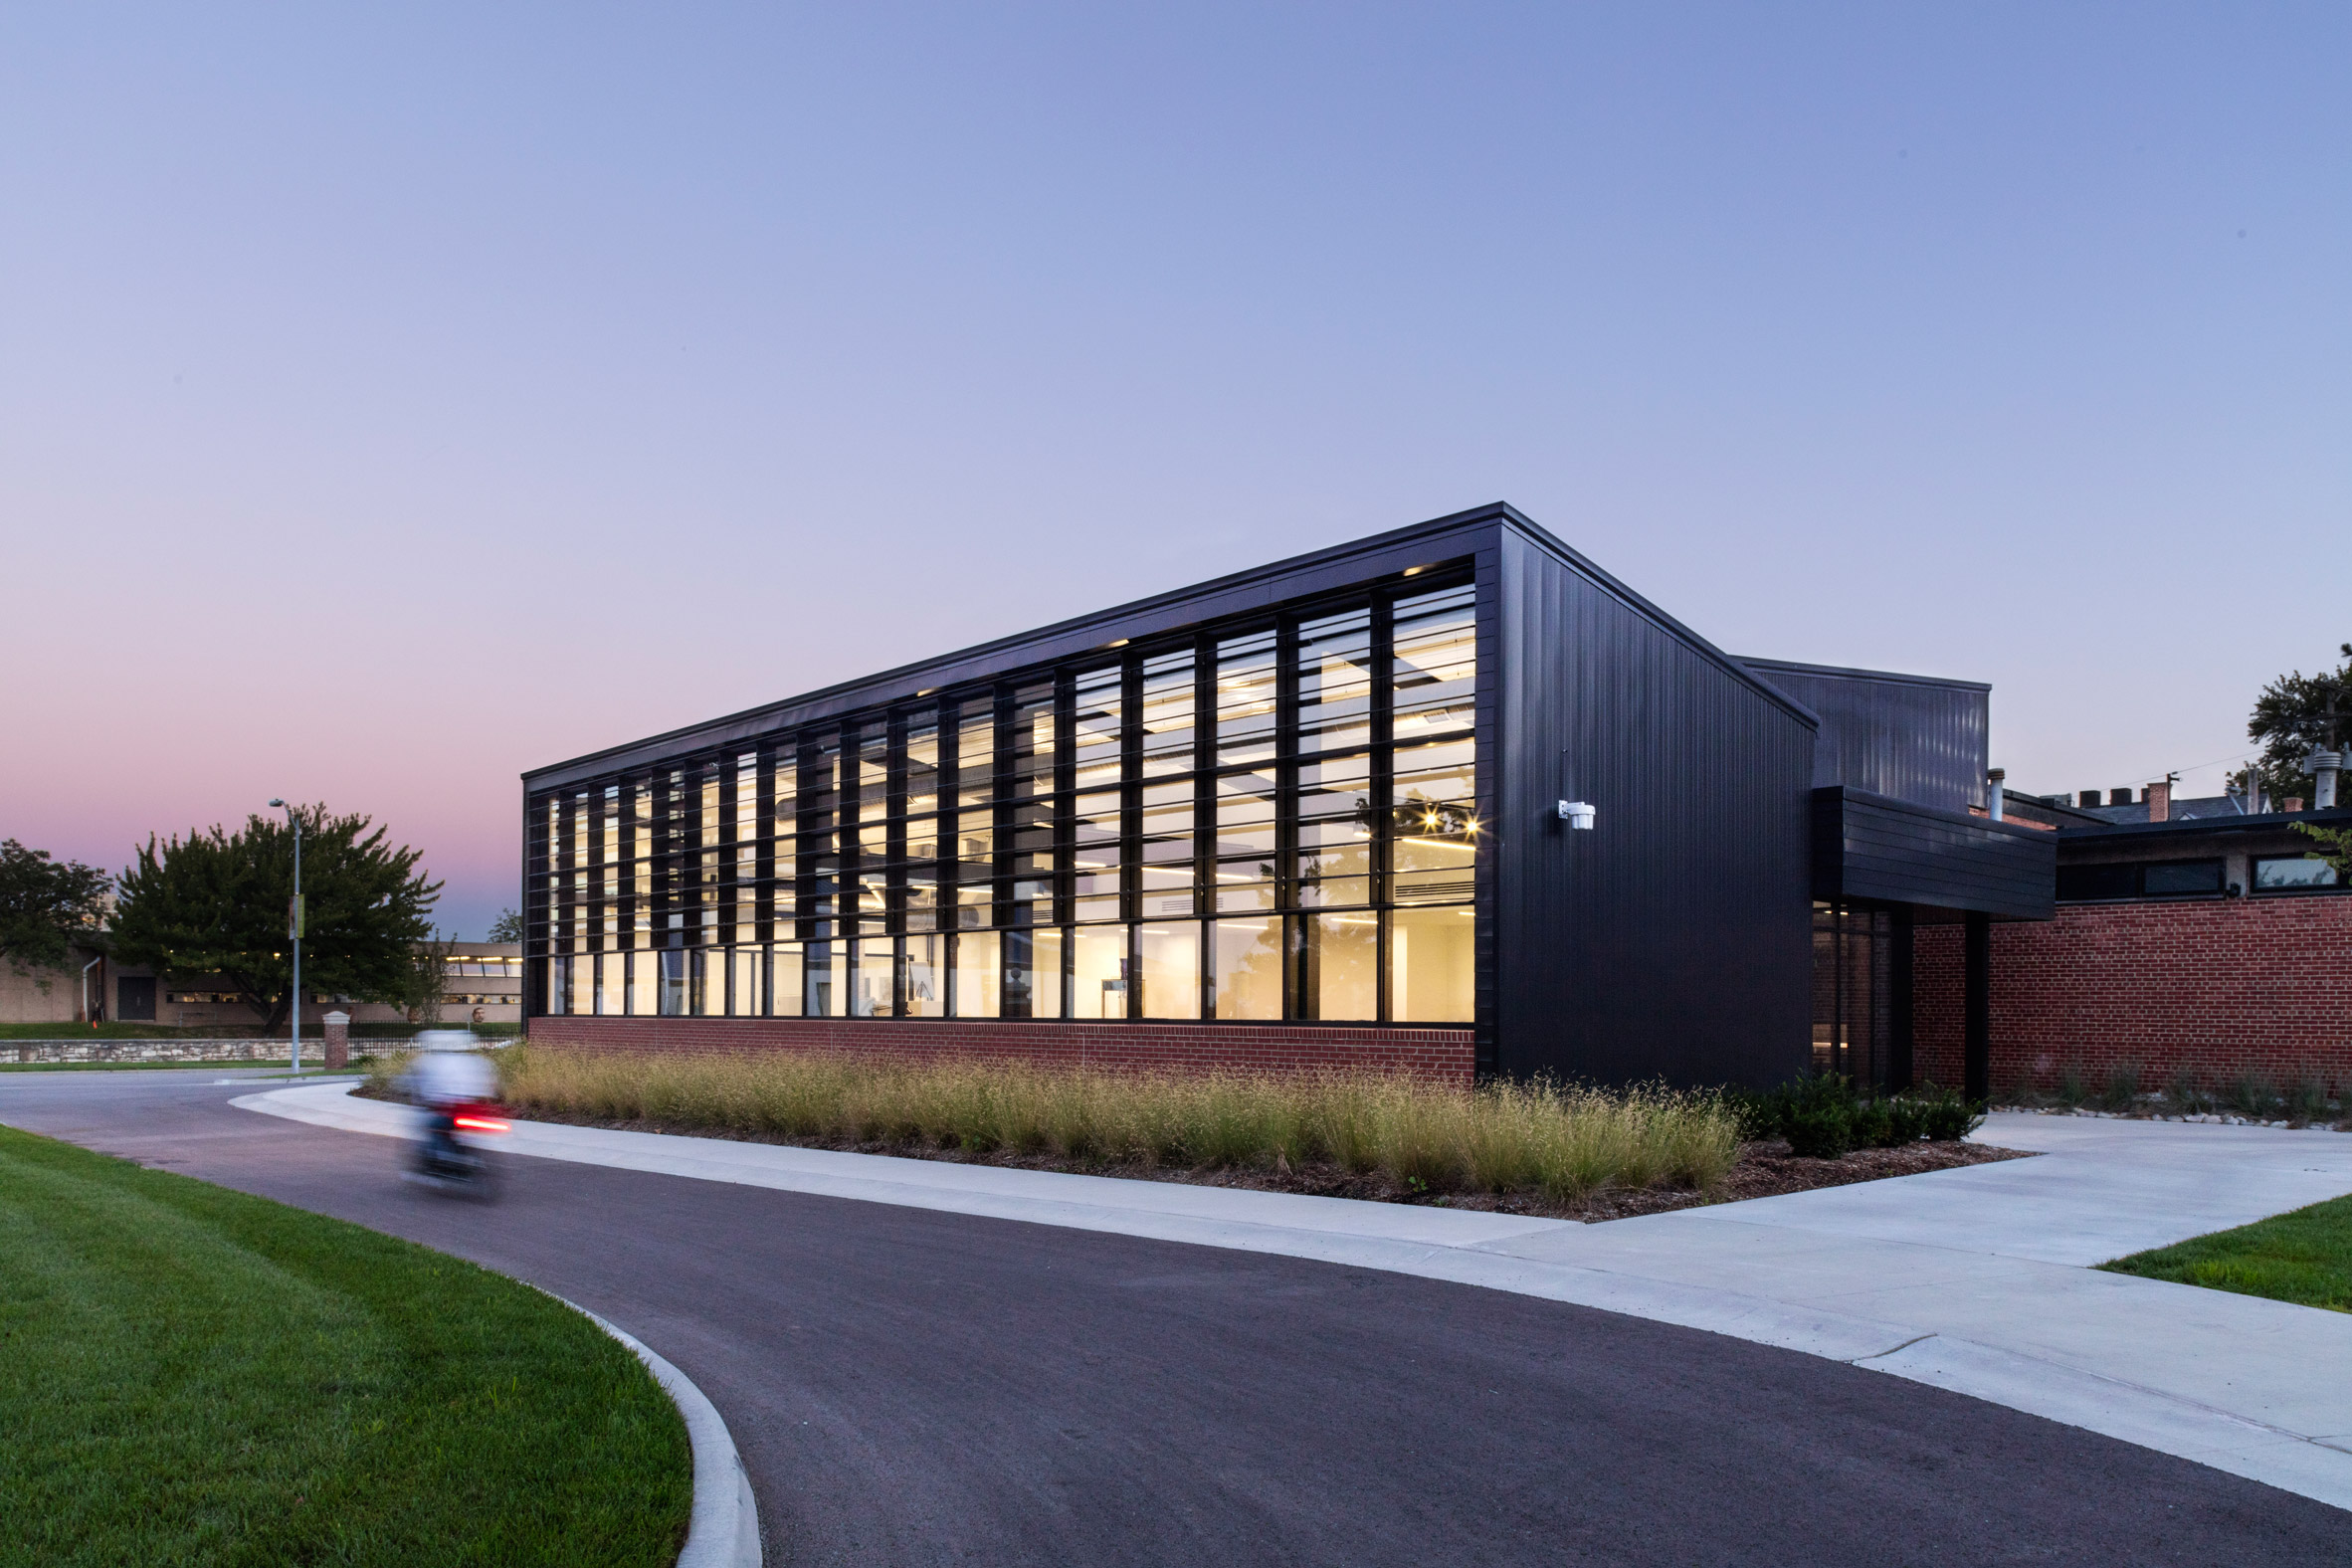 Gould Evans creates black metal studio building for Missouri art school